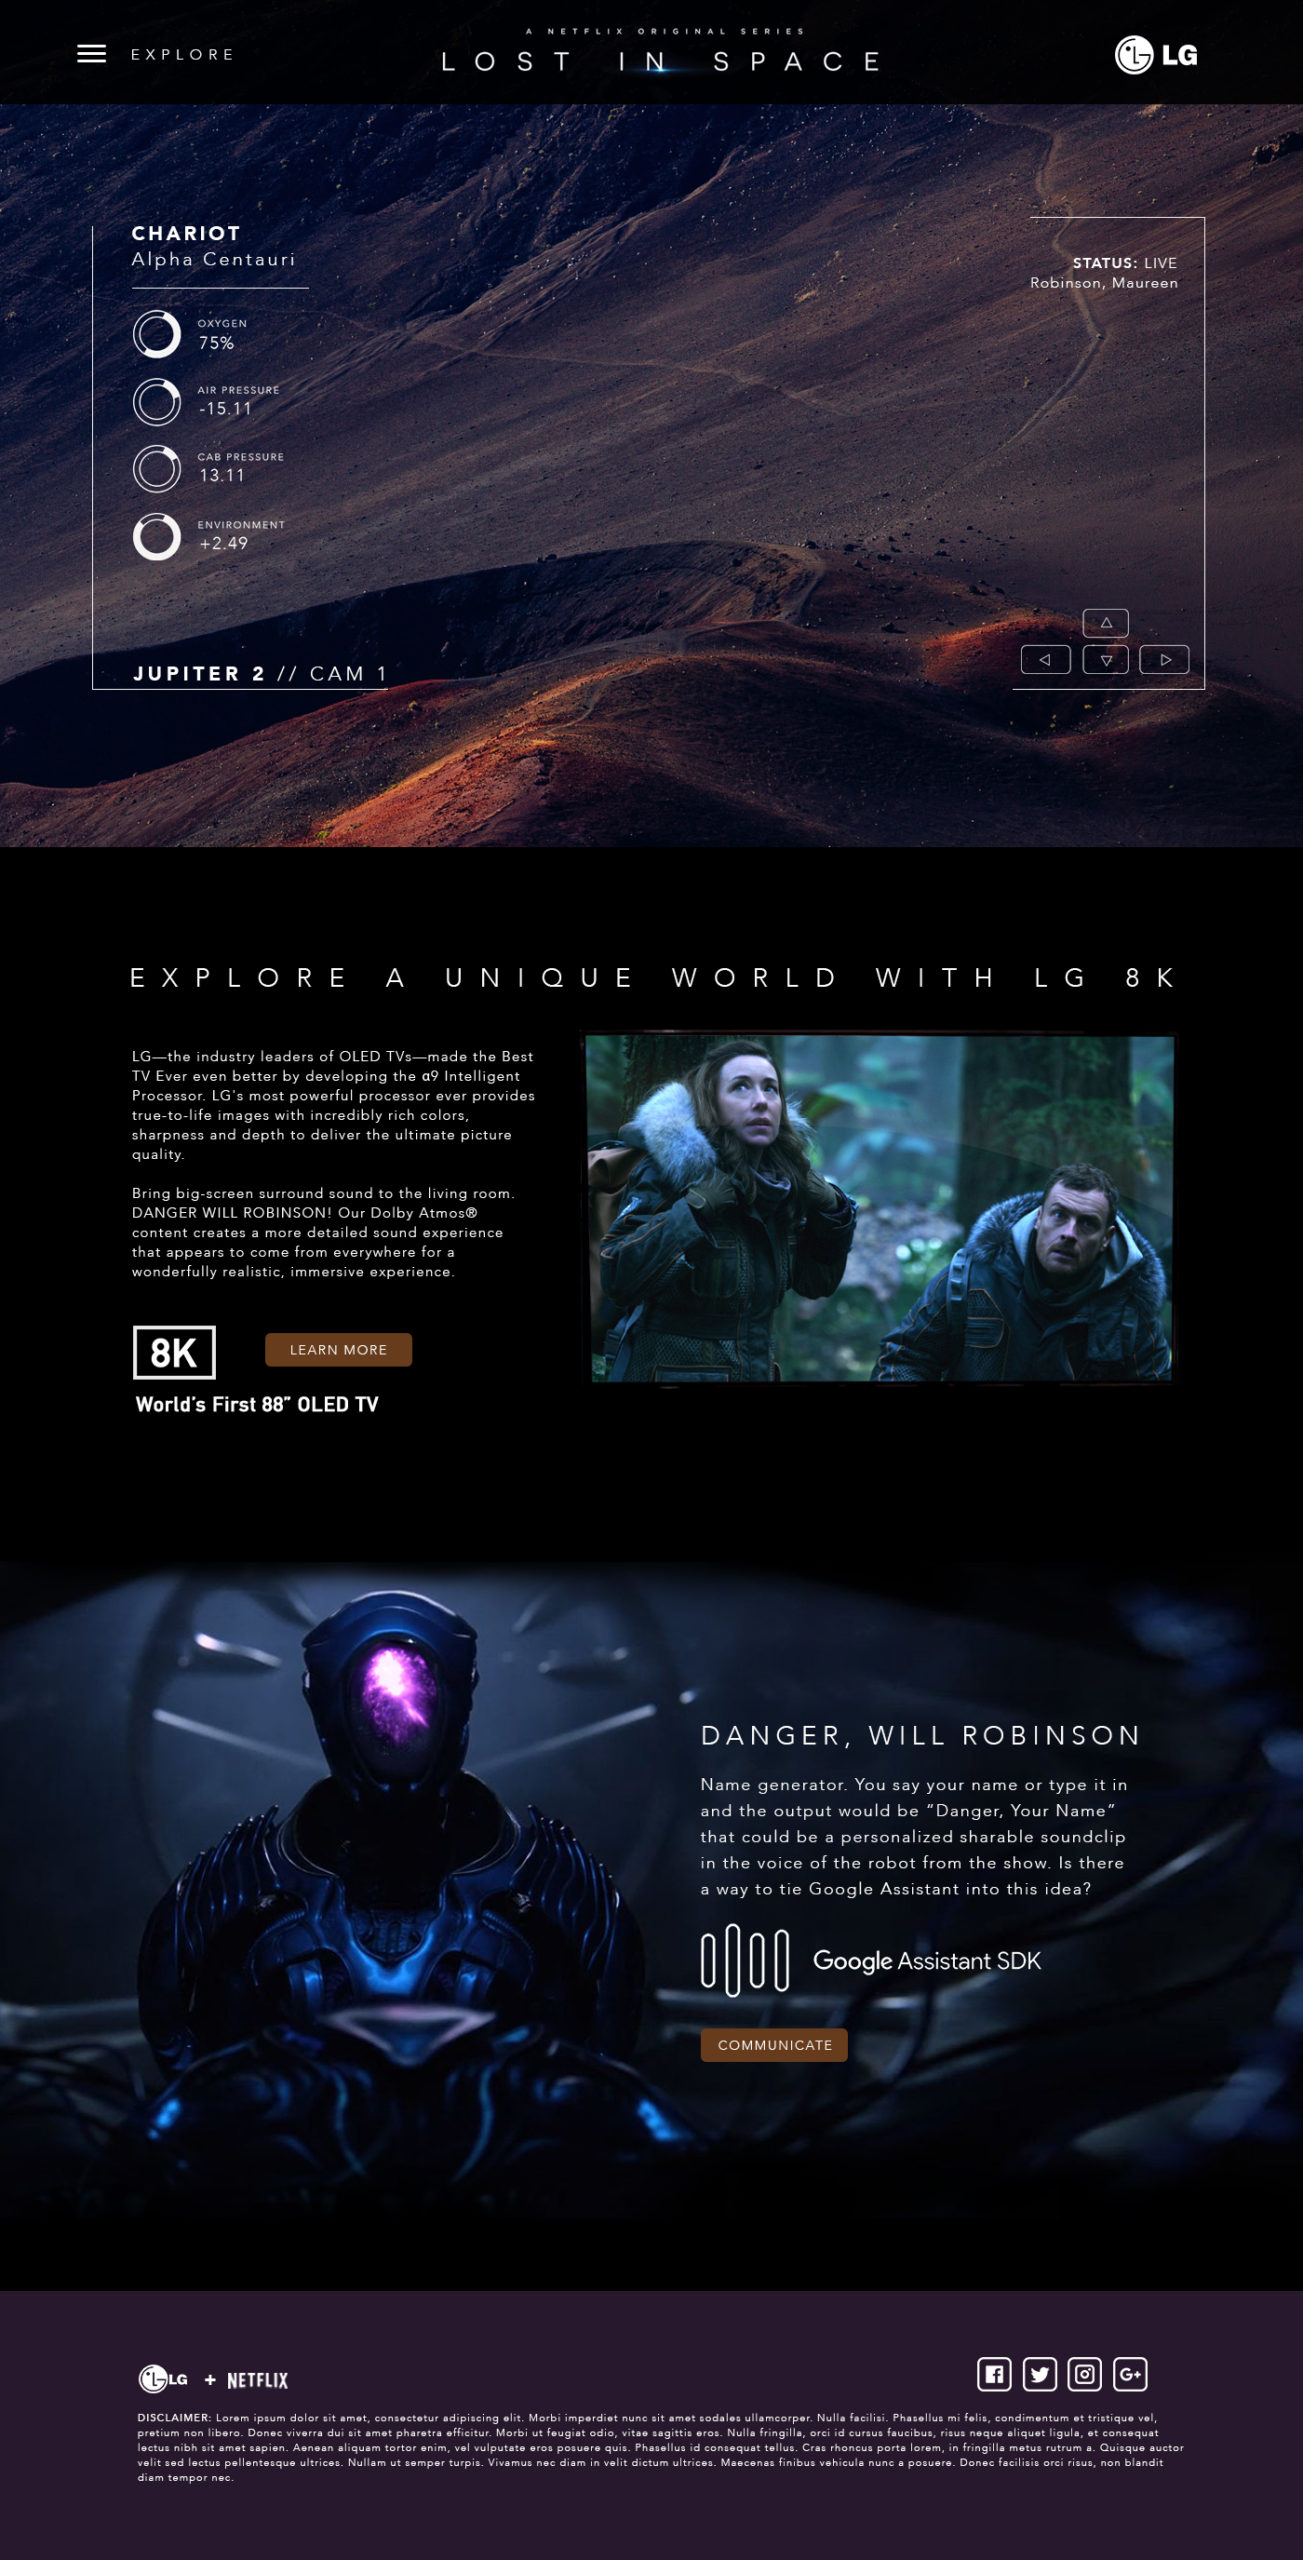 Lost_In_Space_microsite_interface